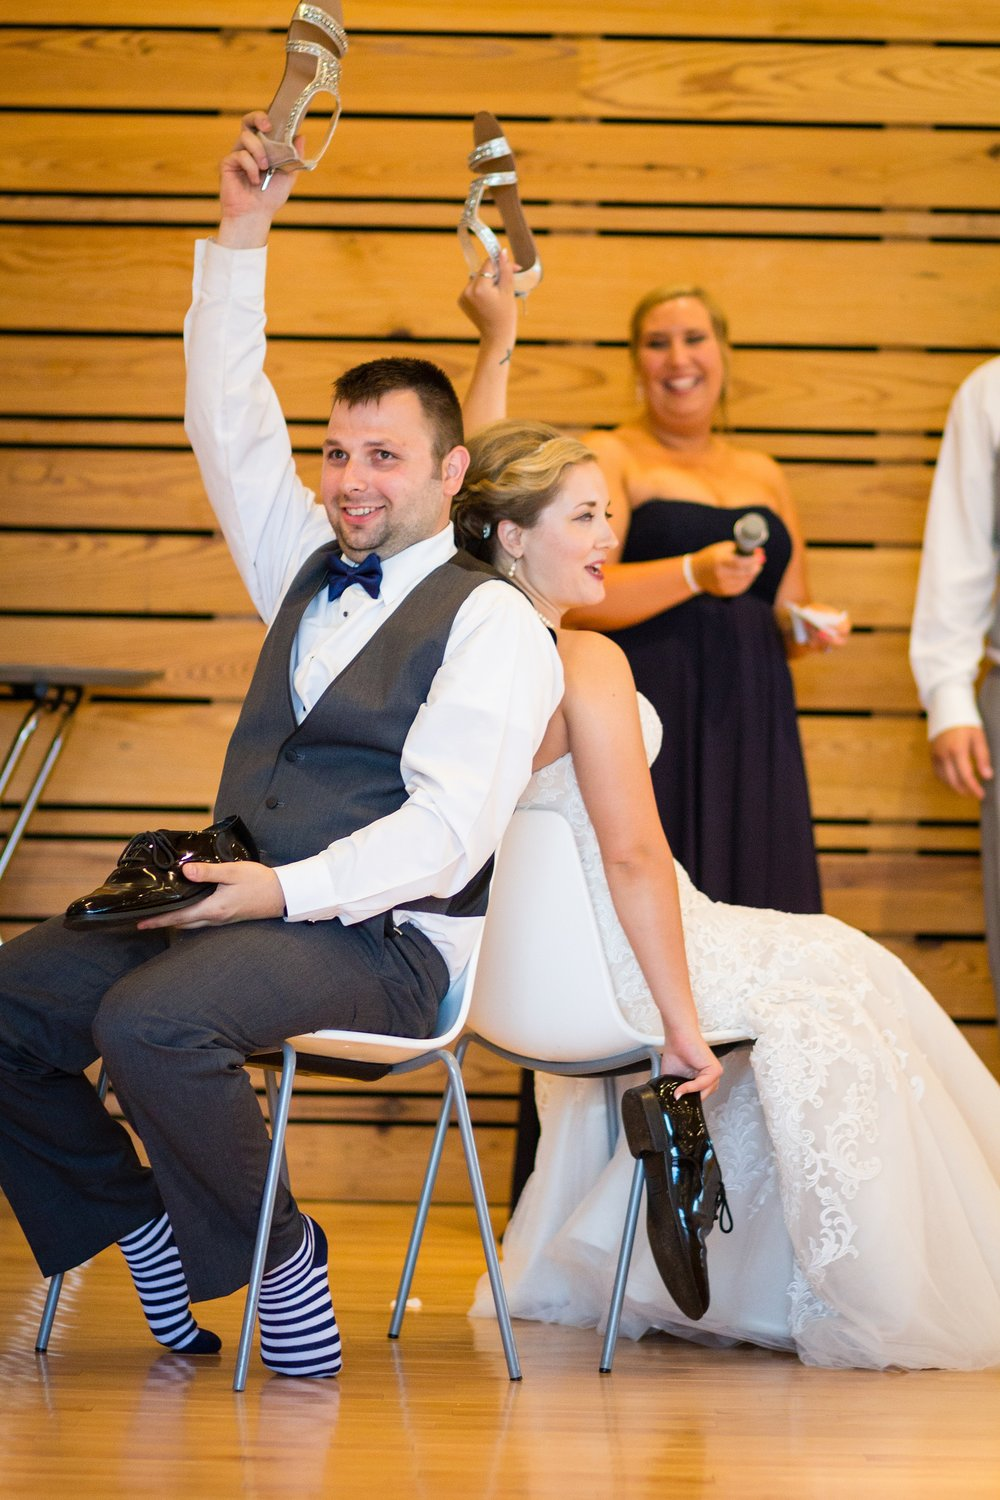 Brandon_Shafer_Photography_Grand_Rapids_Bride_Groom_0046.jpg